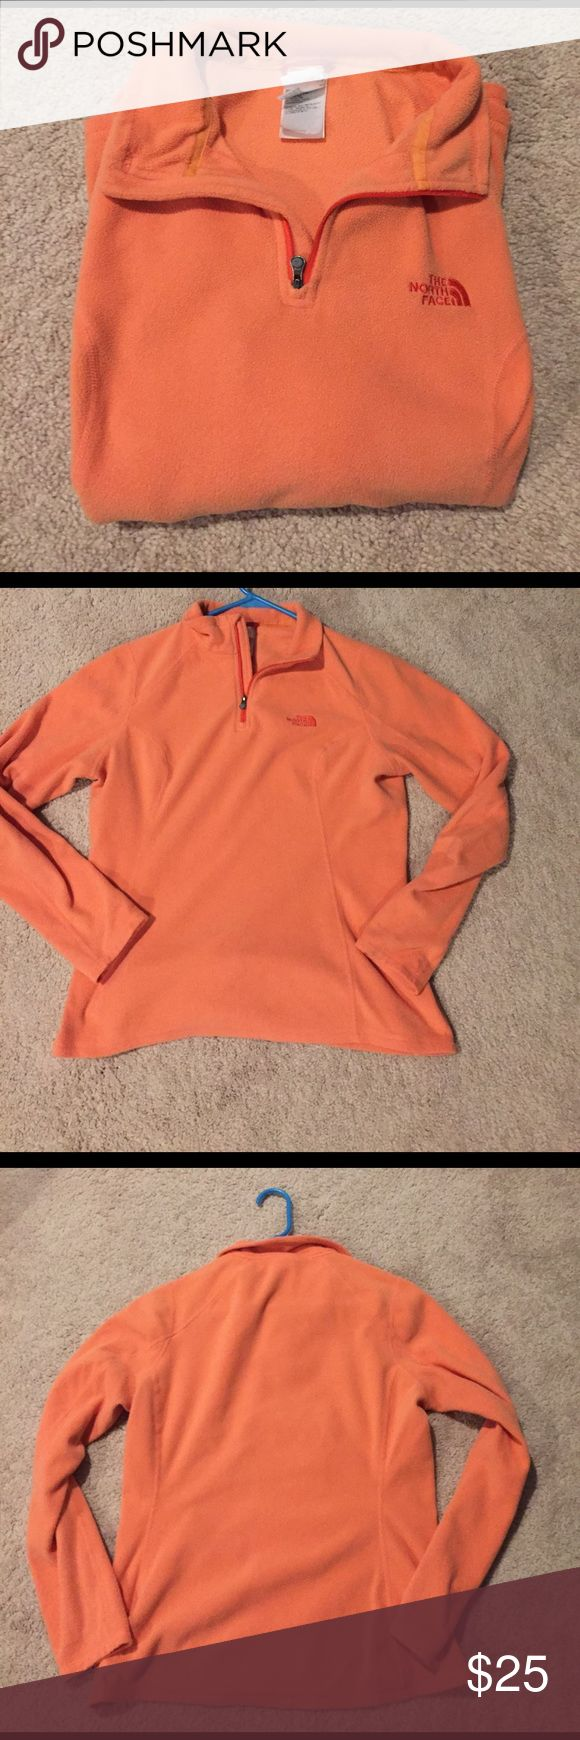 Ladies North Face. Coral Size Medium Women's North Face Pull Over Fleece. Coral colored in a Medium. This is used and In good condition, no stains, tears or other issues. The North Face Jackets & Coats